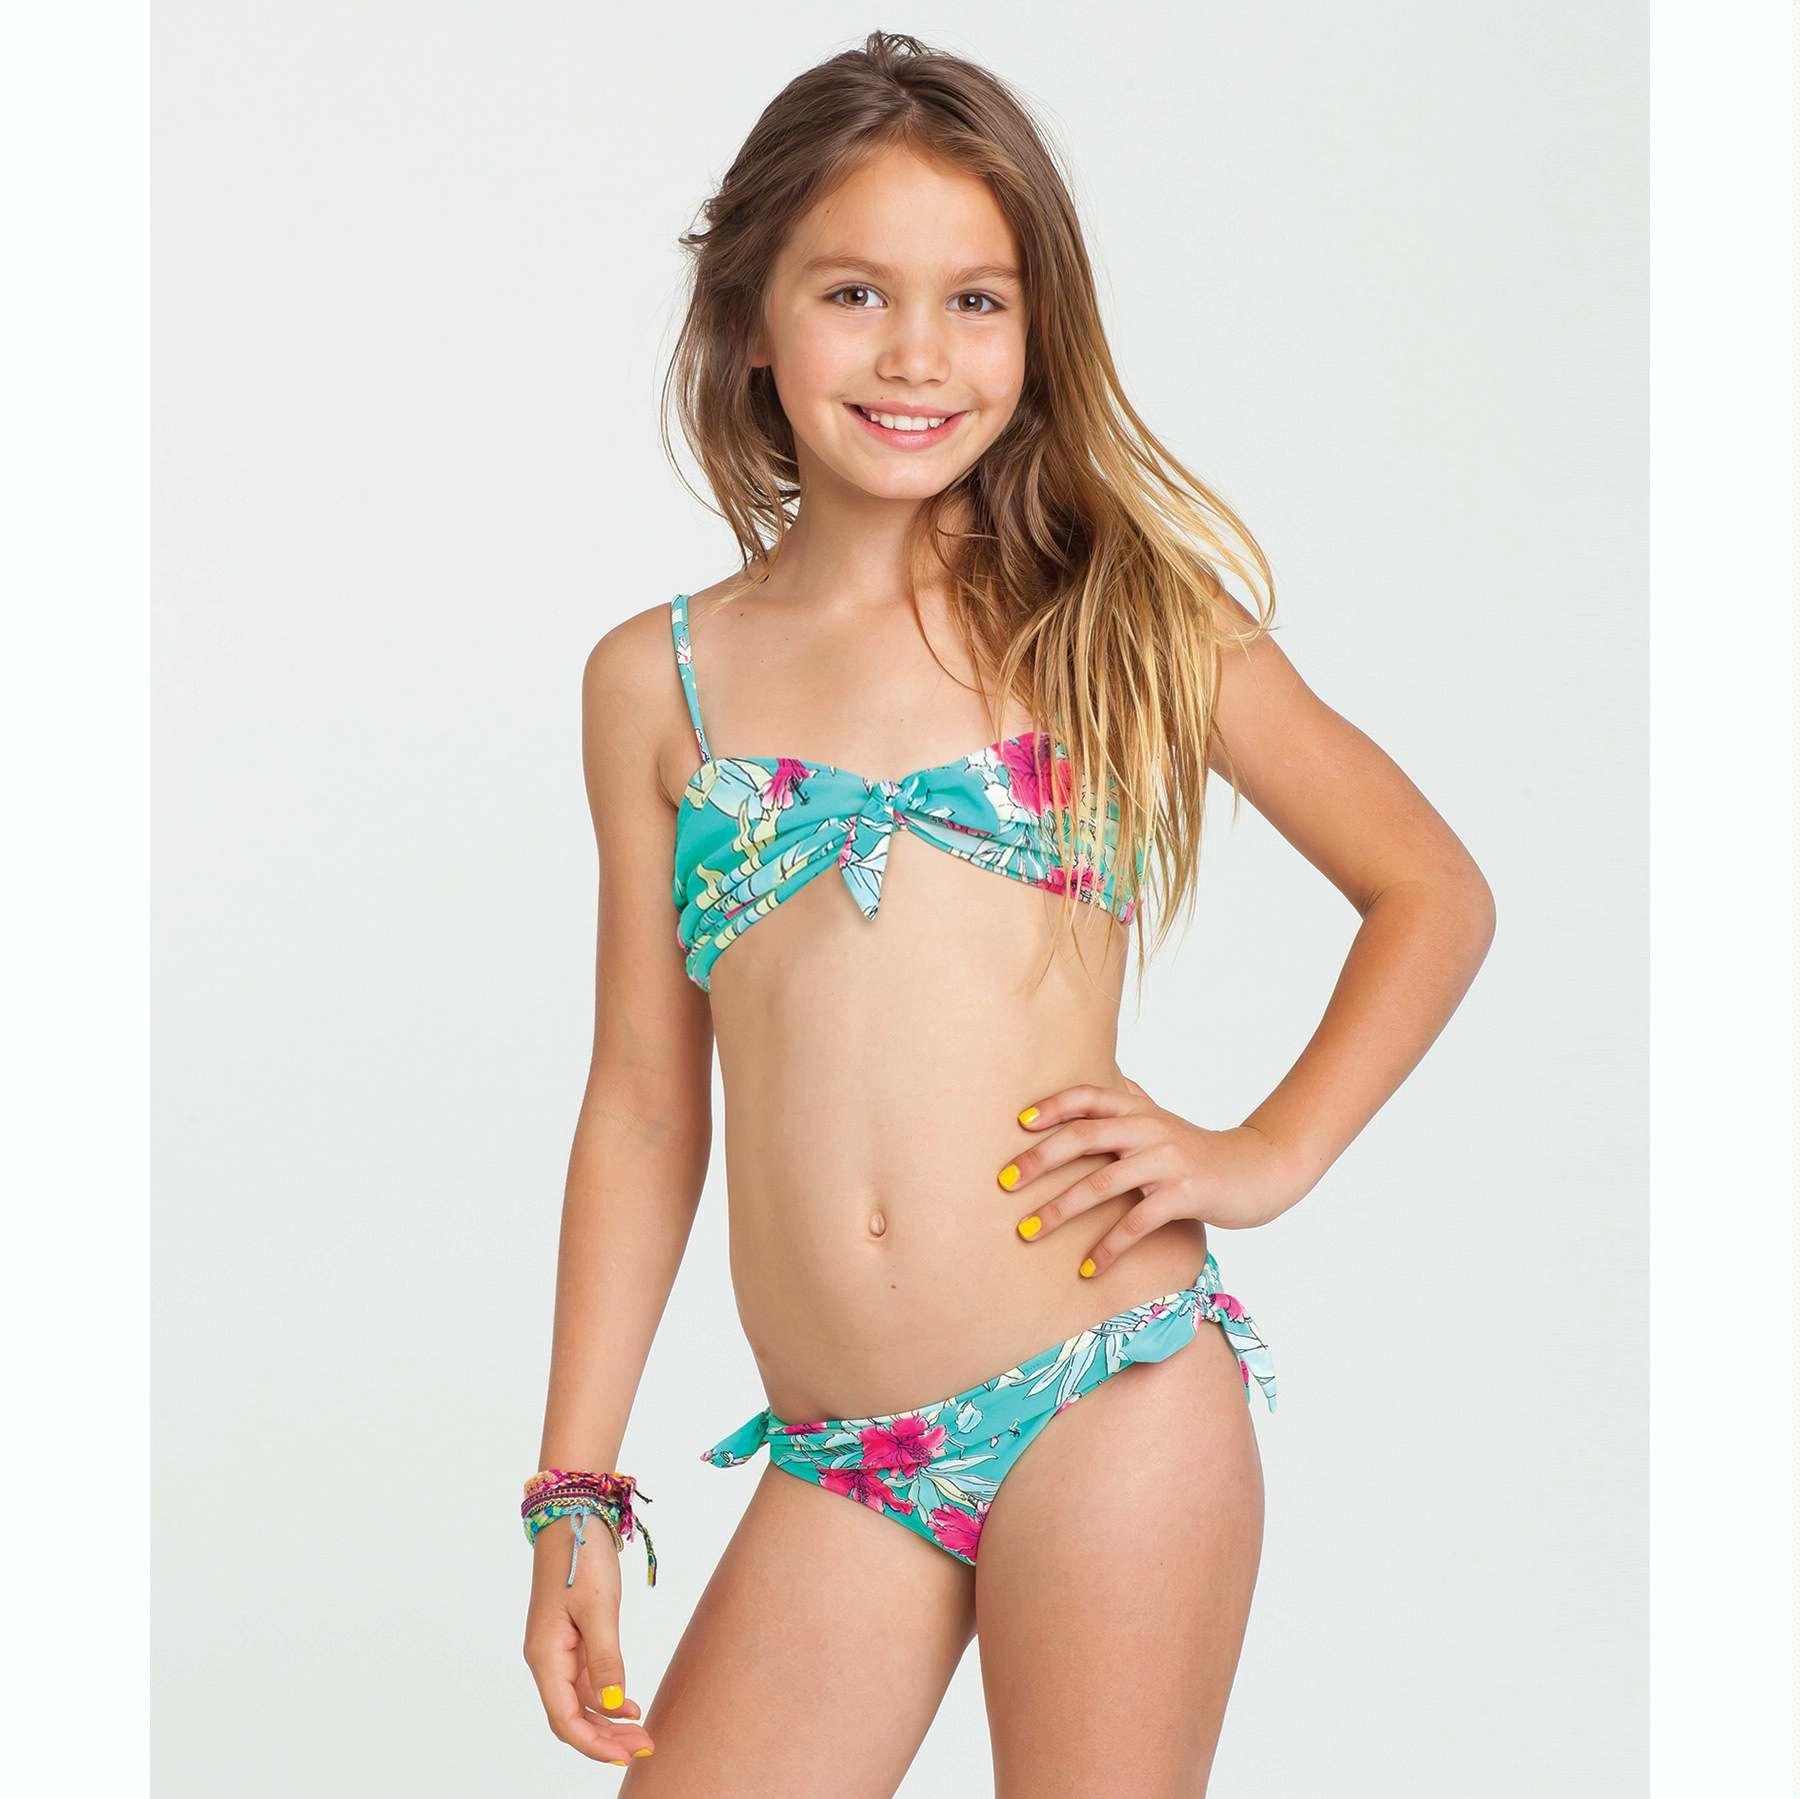 13 Year Old Girl Swimsuit | galleryhip.com - The ...